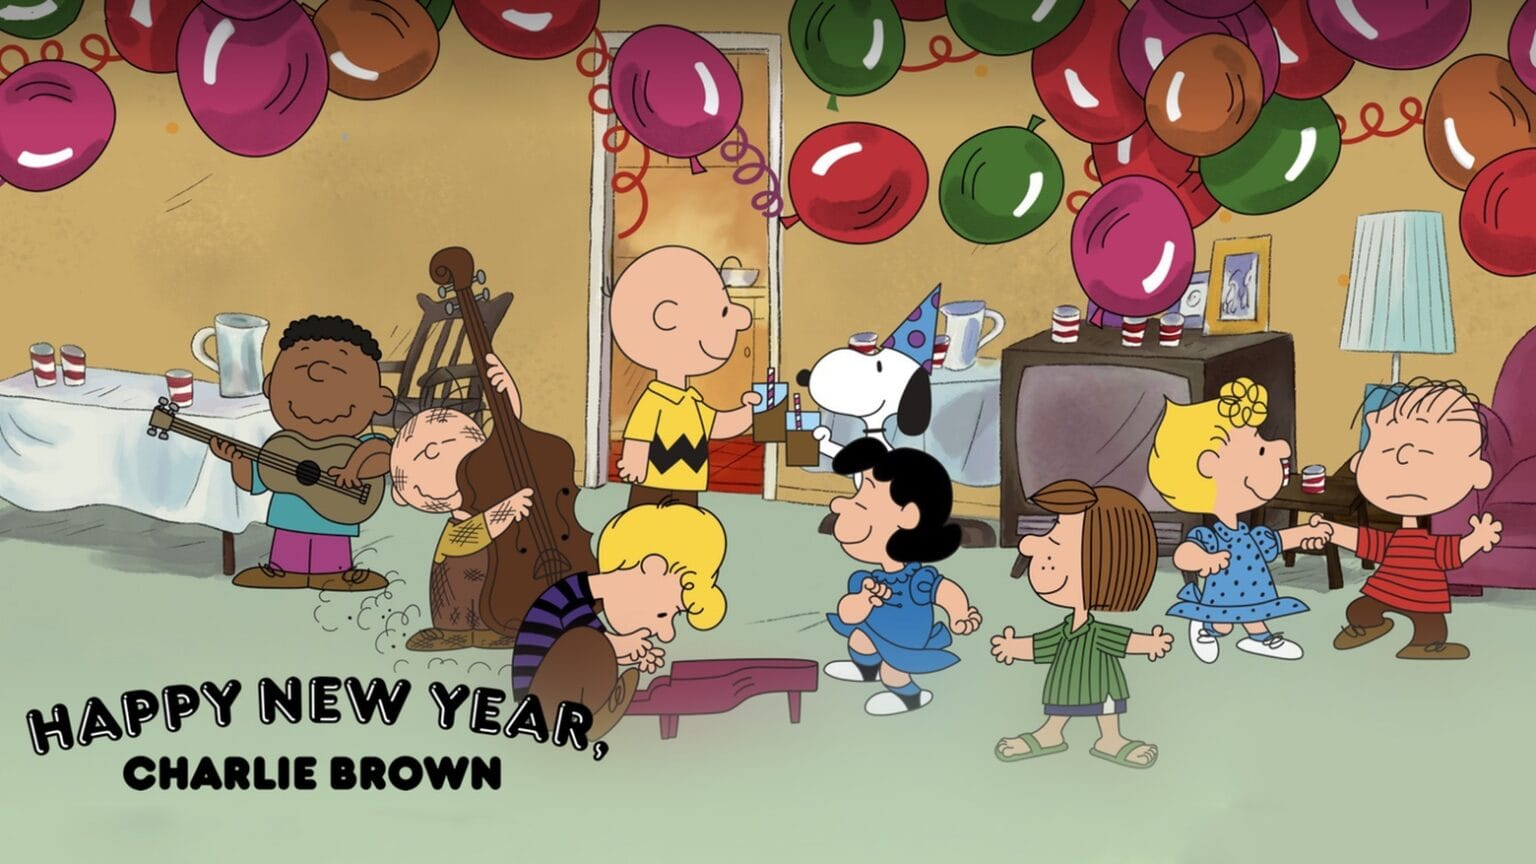 The Peanuts New Year's Eve special is now on Apple TV+.